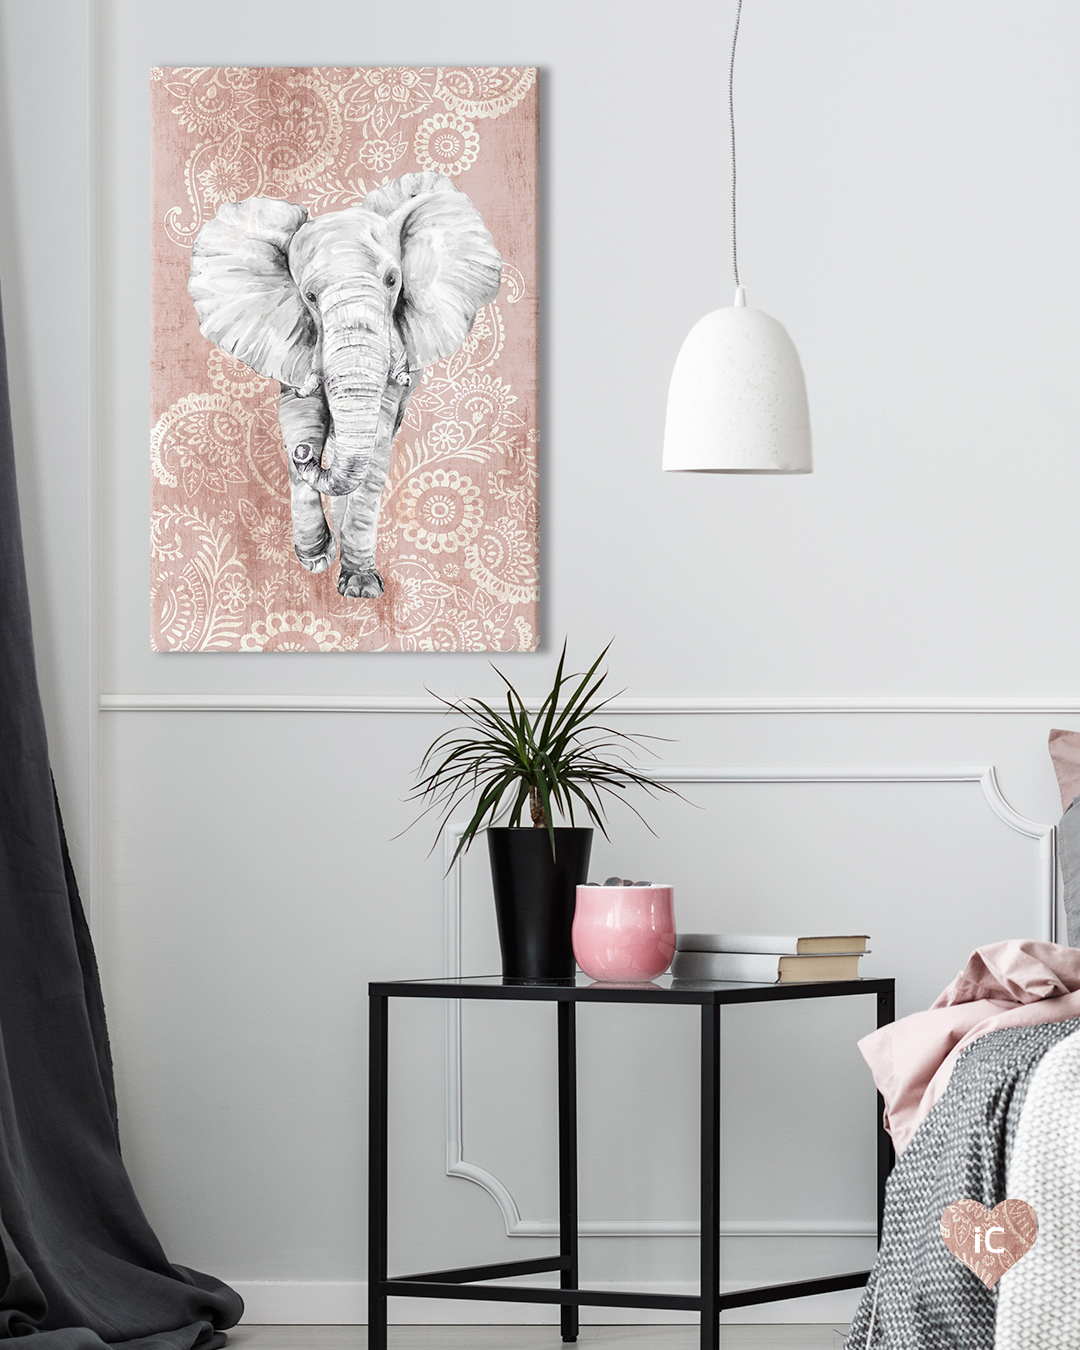 a large gray elephant walking towards you on a pink paisley background